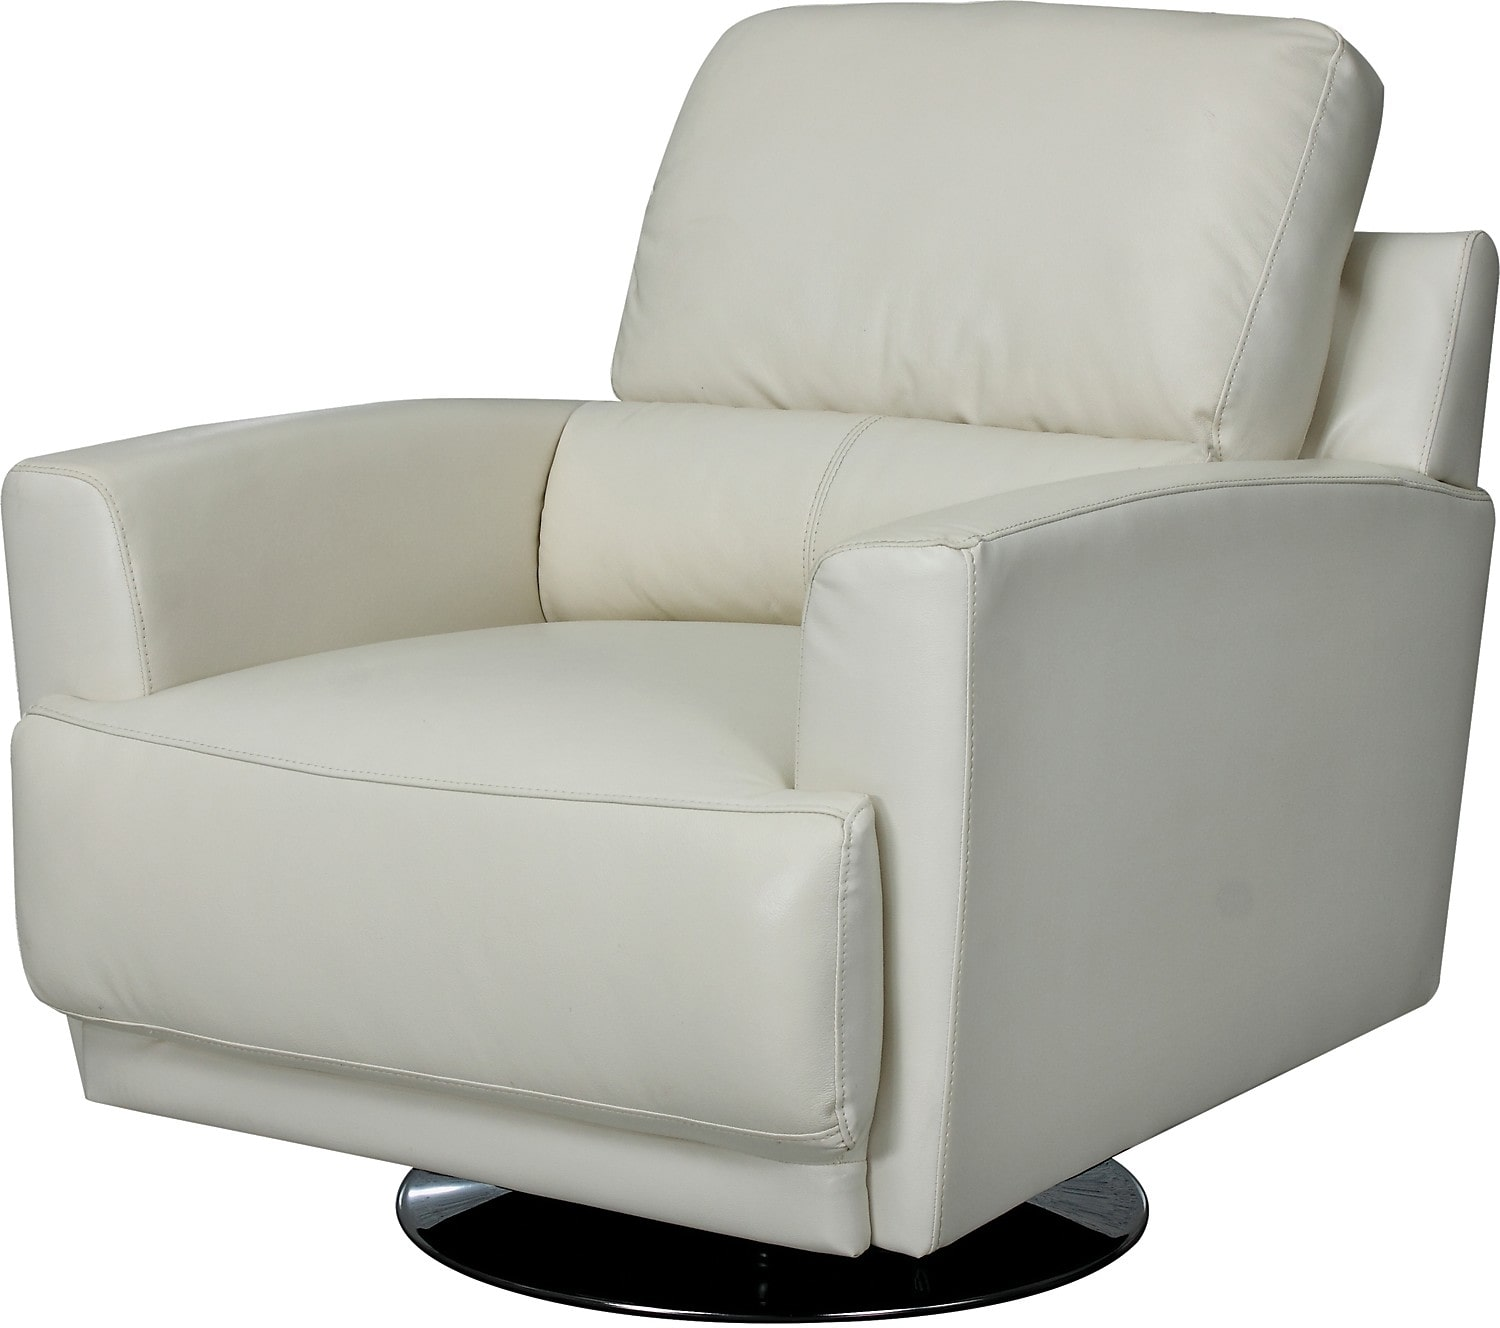 Nico Genuine Leather Swivel Chair - Ivory